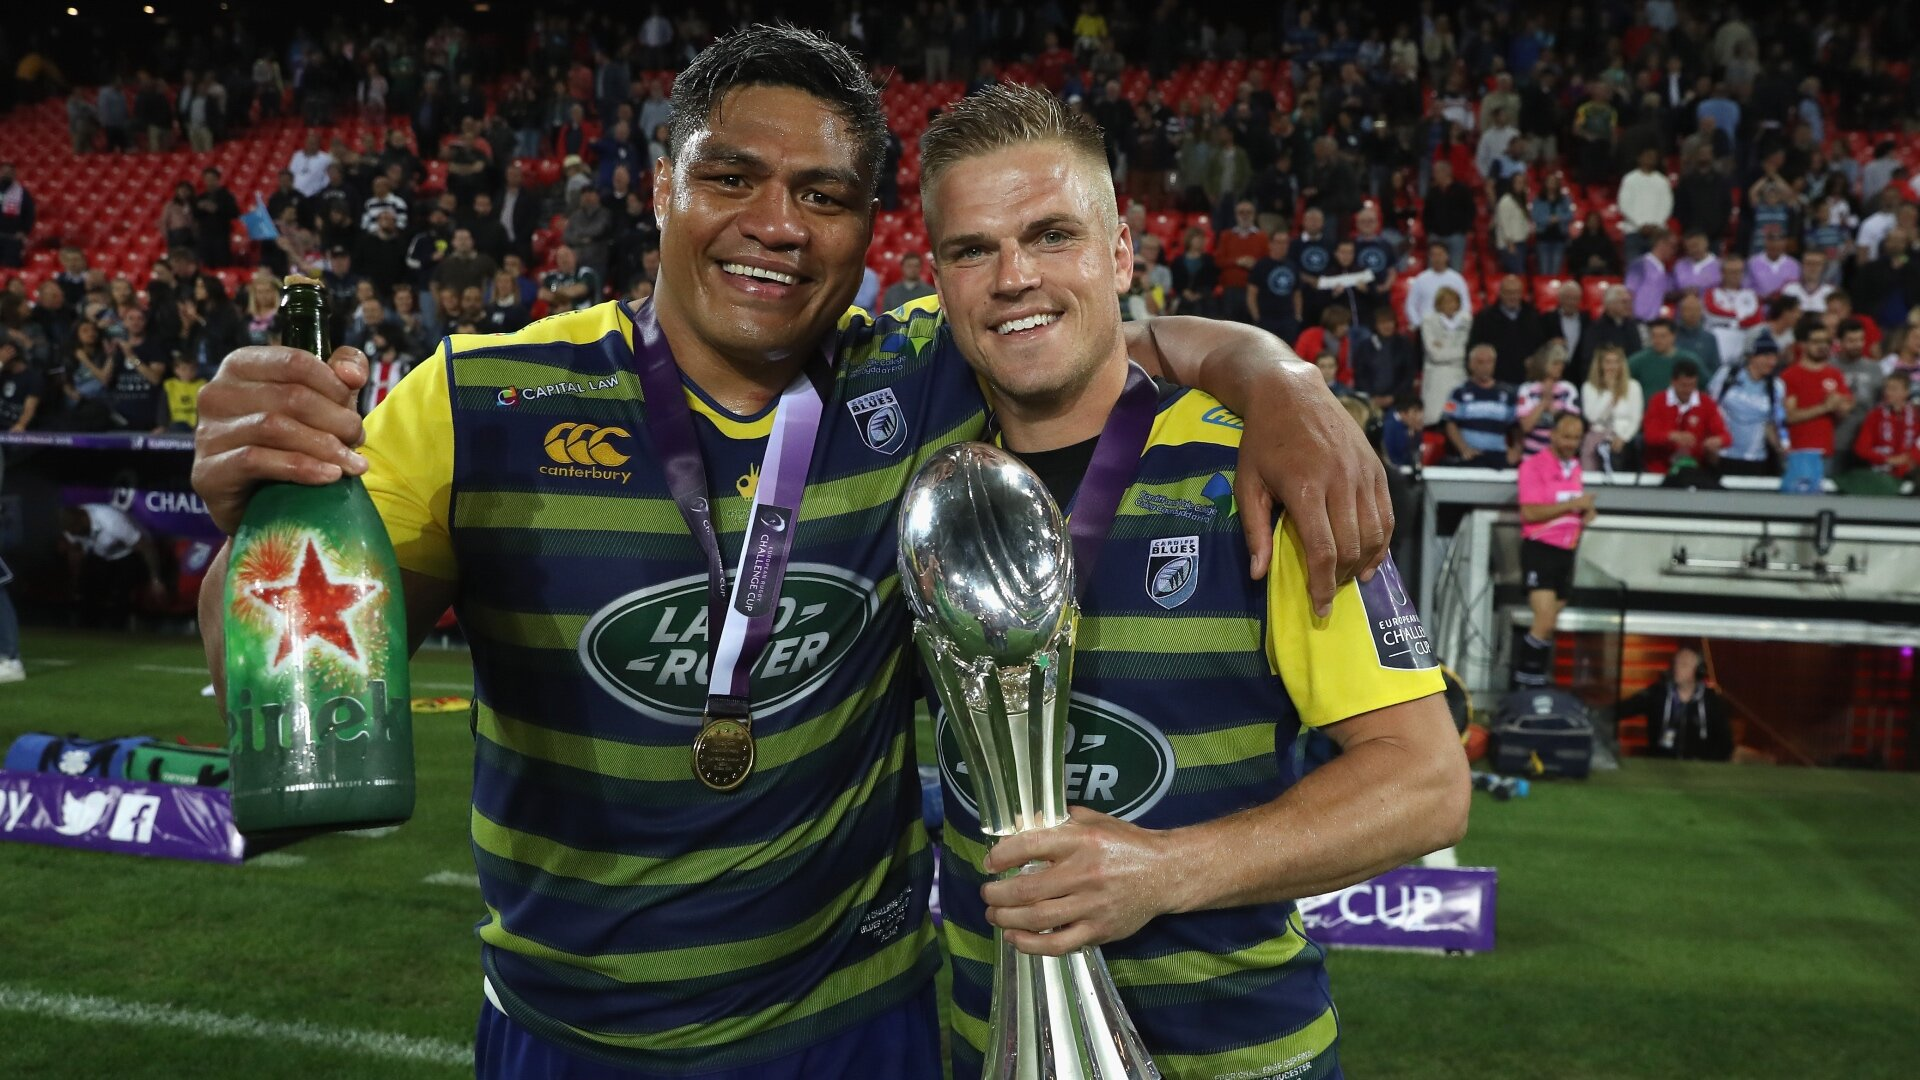 Nick Williams and Gareth Anscombe